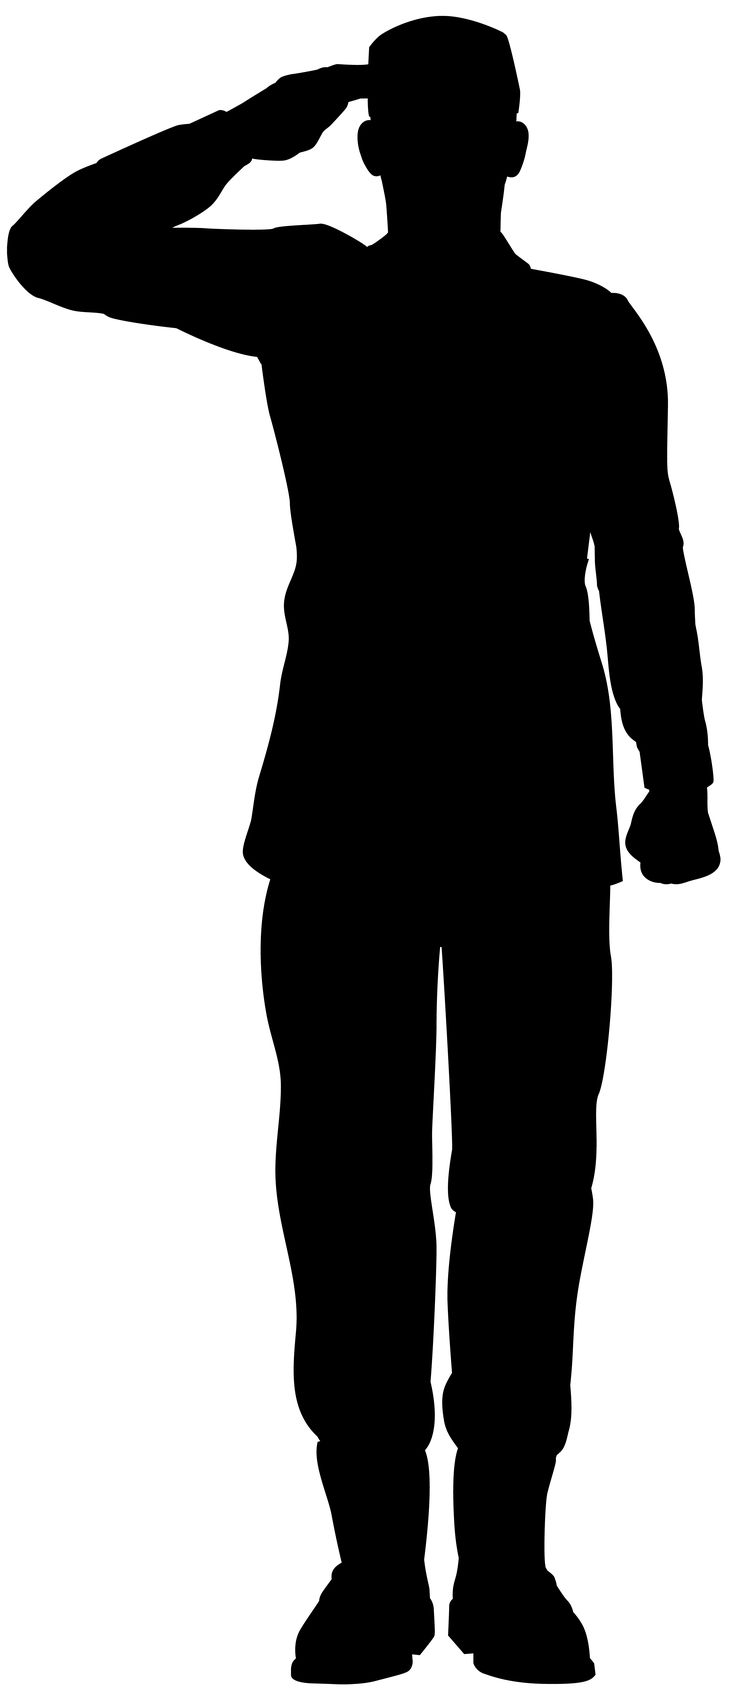 ww1 soldier silhouette the gallery for gt ww1 soldier silhouette ww1 silhouette soldier